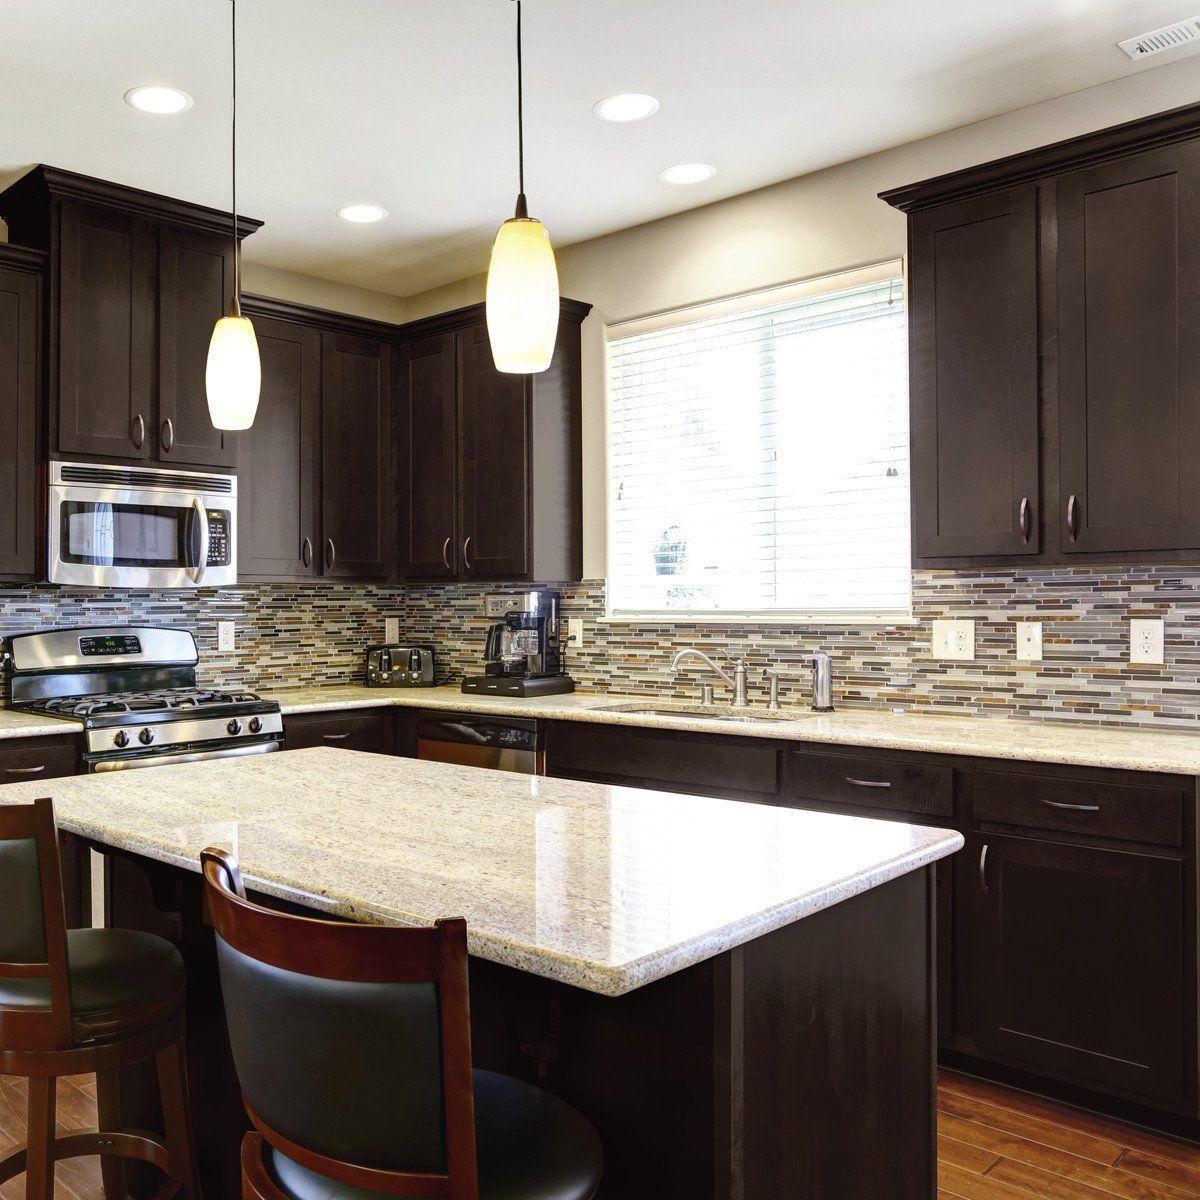 Nuvo Cocoa Couture Cabinet Paint Kit In 2020 Brown Kitchen Cabinets Kitchen Renovation New Kitchen Cabinets